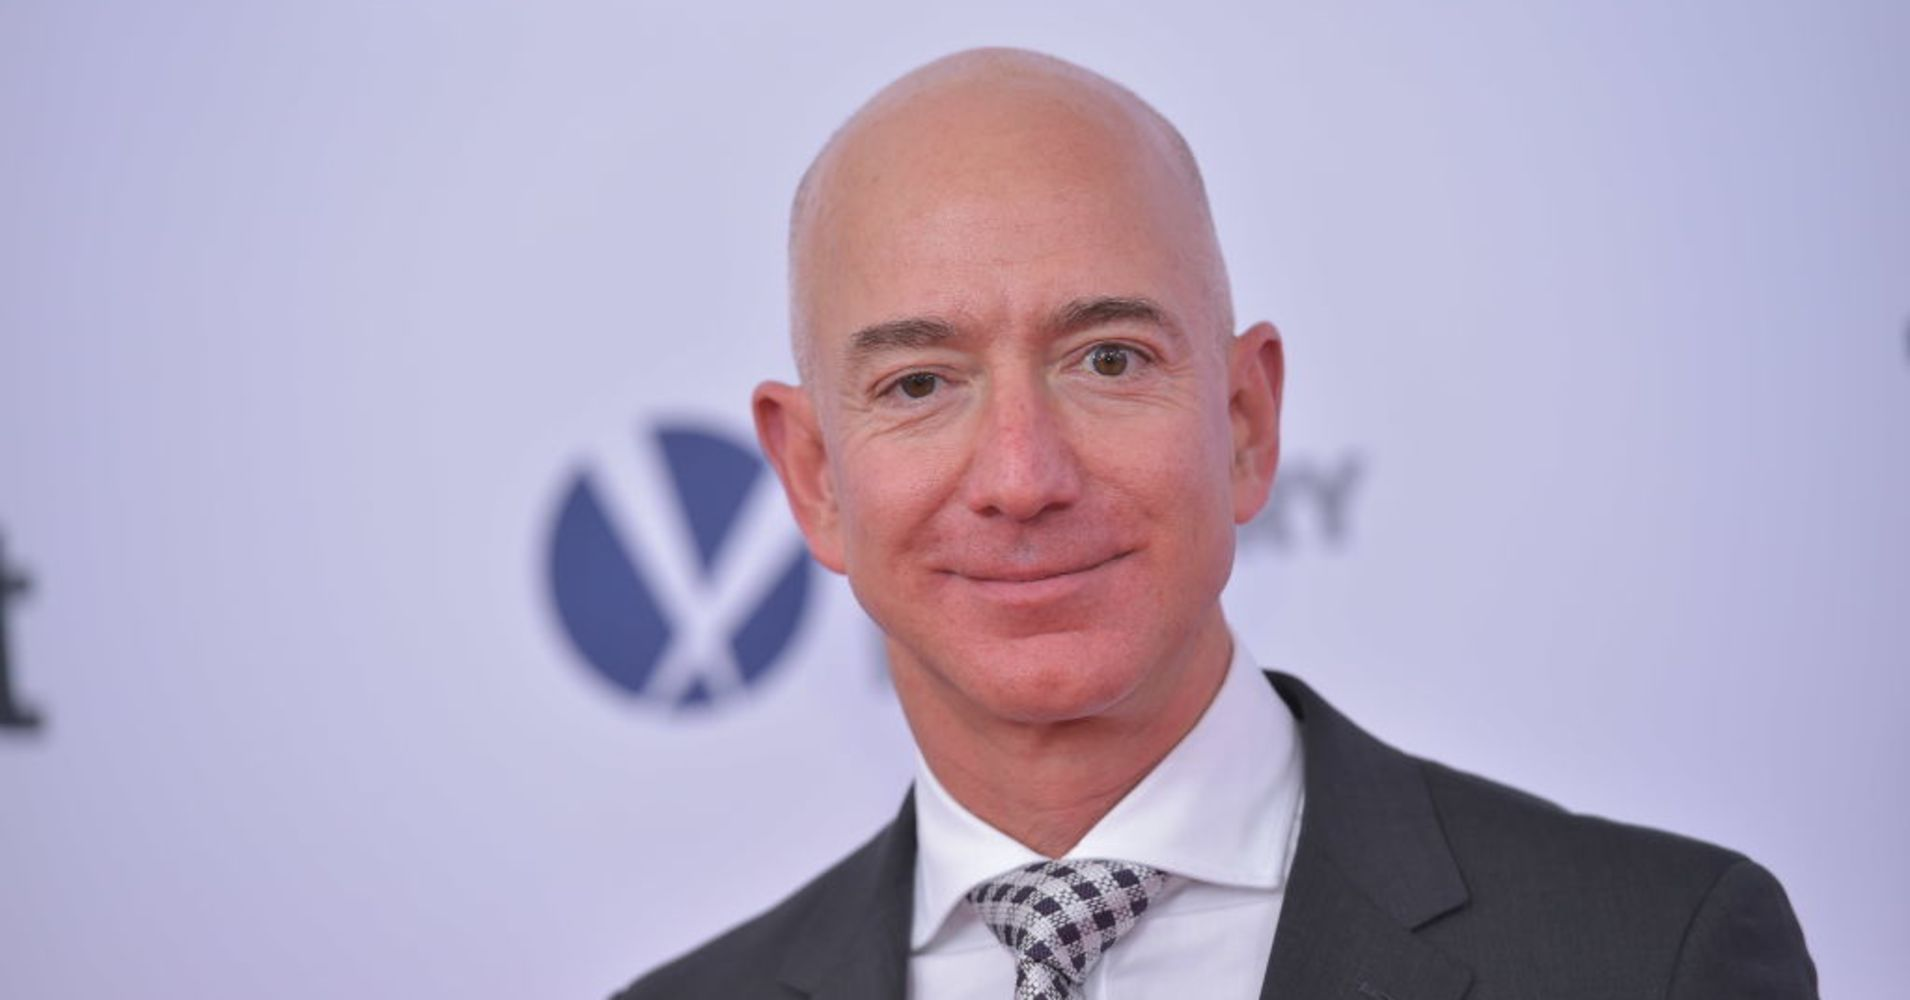 10 Richest Americans In 2019 Https Universitymagazine Ca 10 Richest Americans In 2019 Amazon Ceo Jeff Bezos This Or That Questions